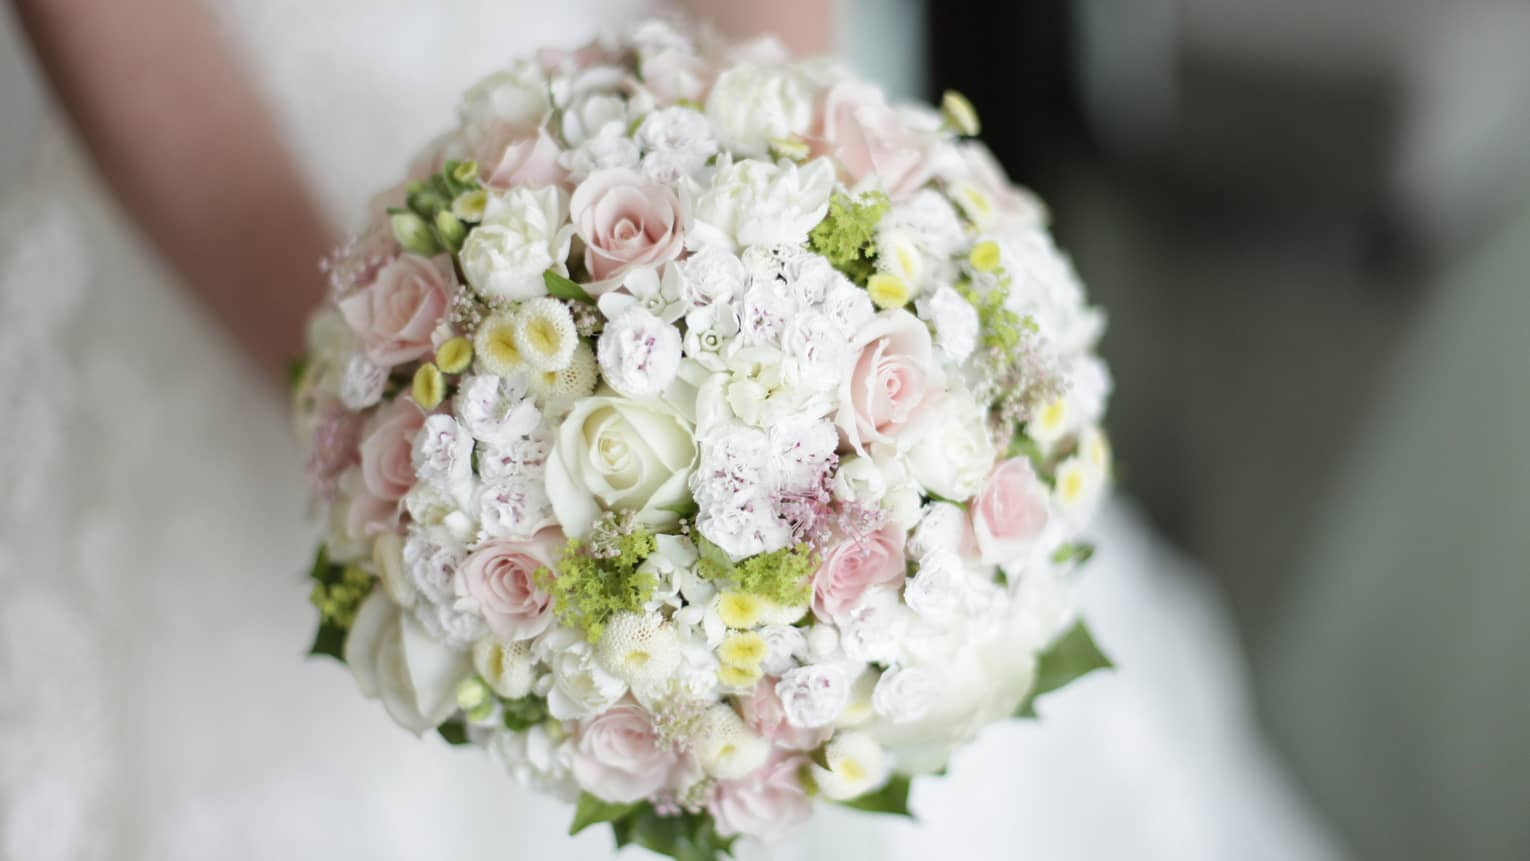 Round floral wedding bouquet with small white and pink roses